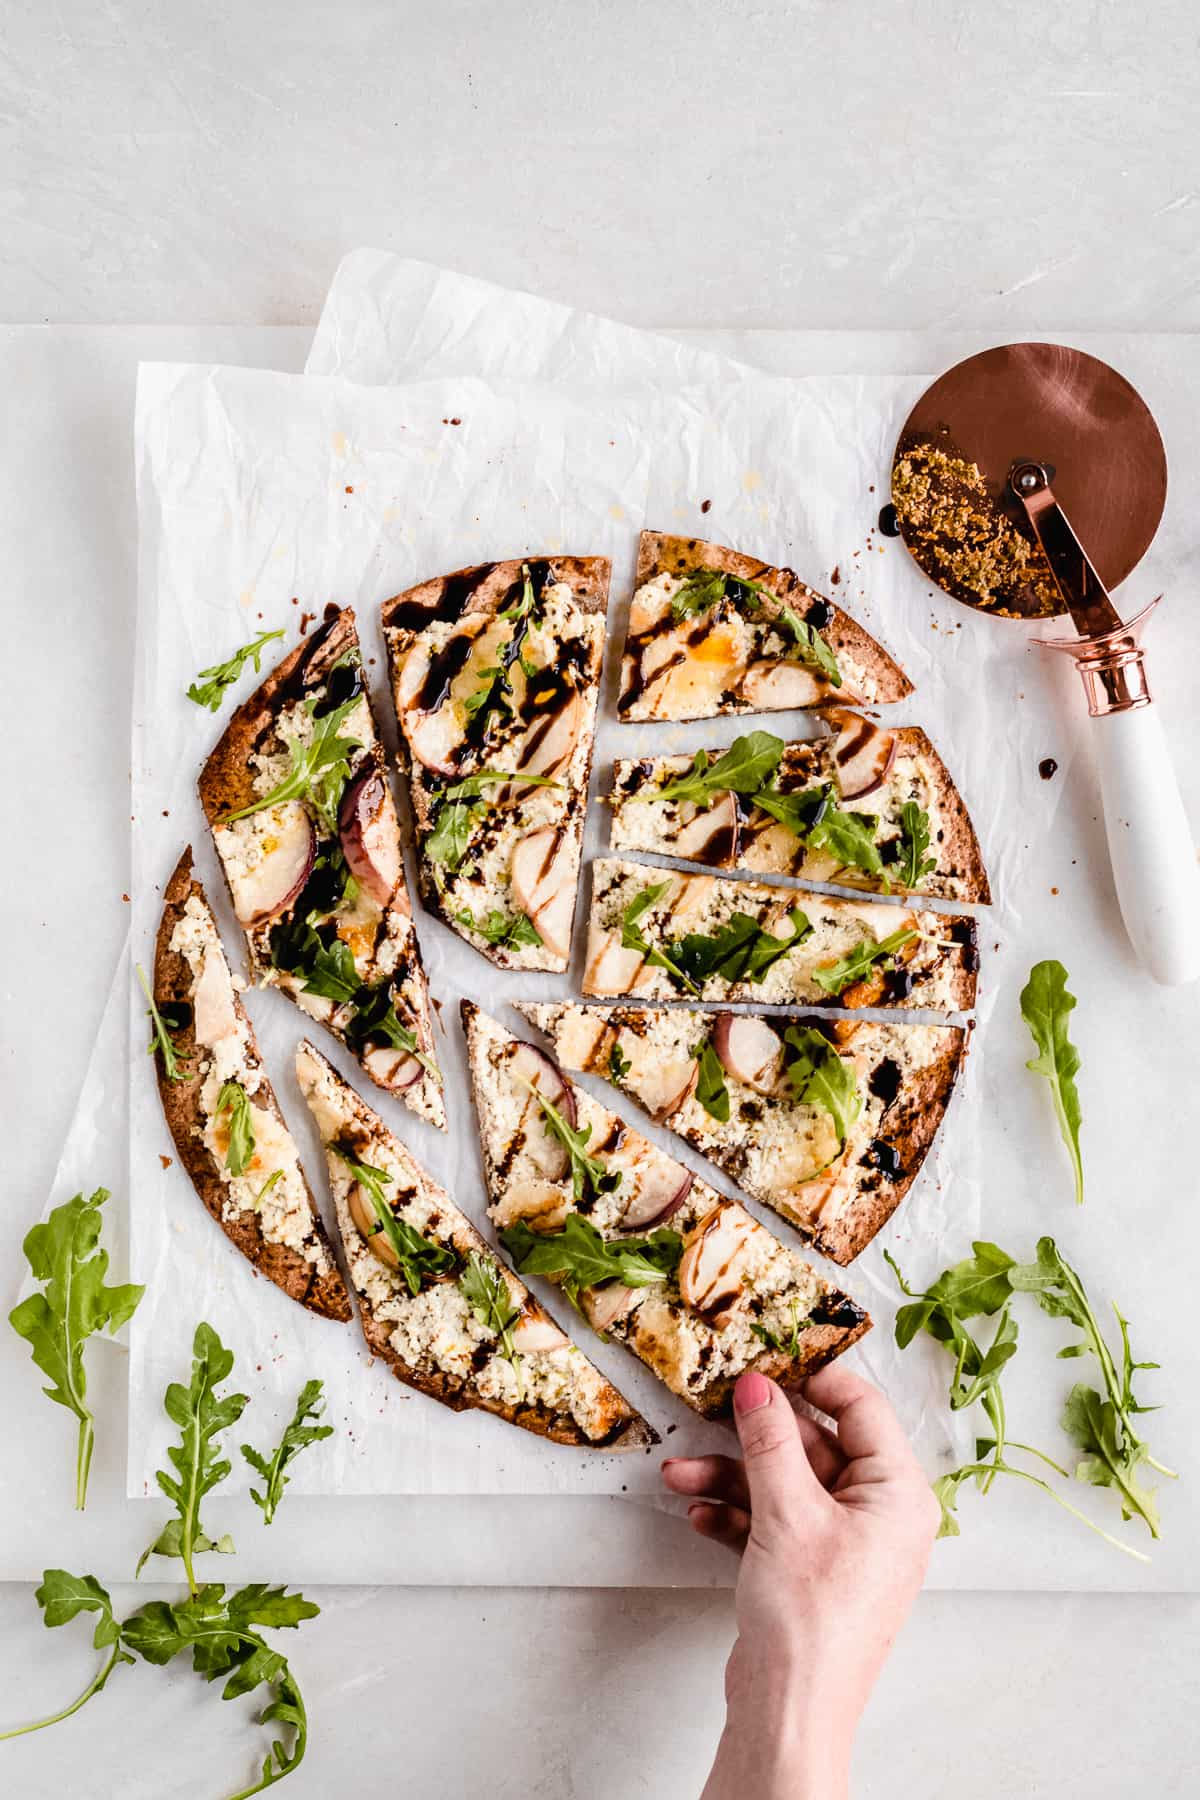 Overhead photo of a Crispy White Peach and Ricotta Pesto Flatbread with Balsamic Glaze placed on top of white parchment paper on a marble slab that has been cut into slices that are separated.  A pizza cutter is laying nearby.  A hand is pulling one piece away.